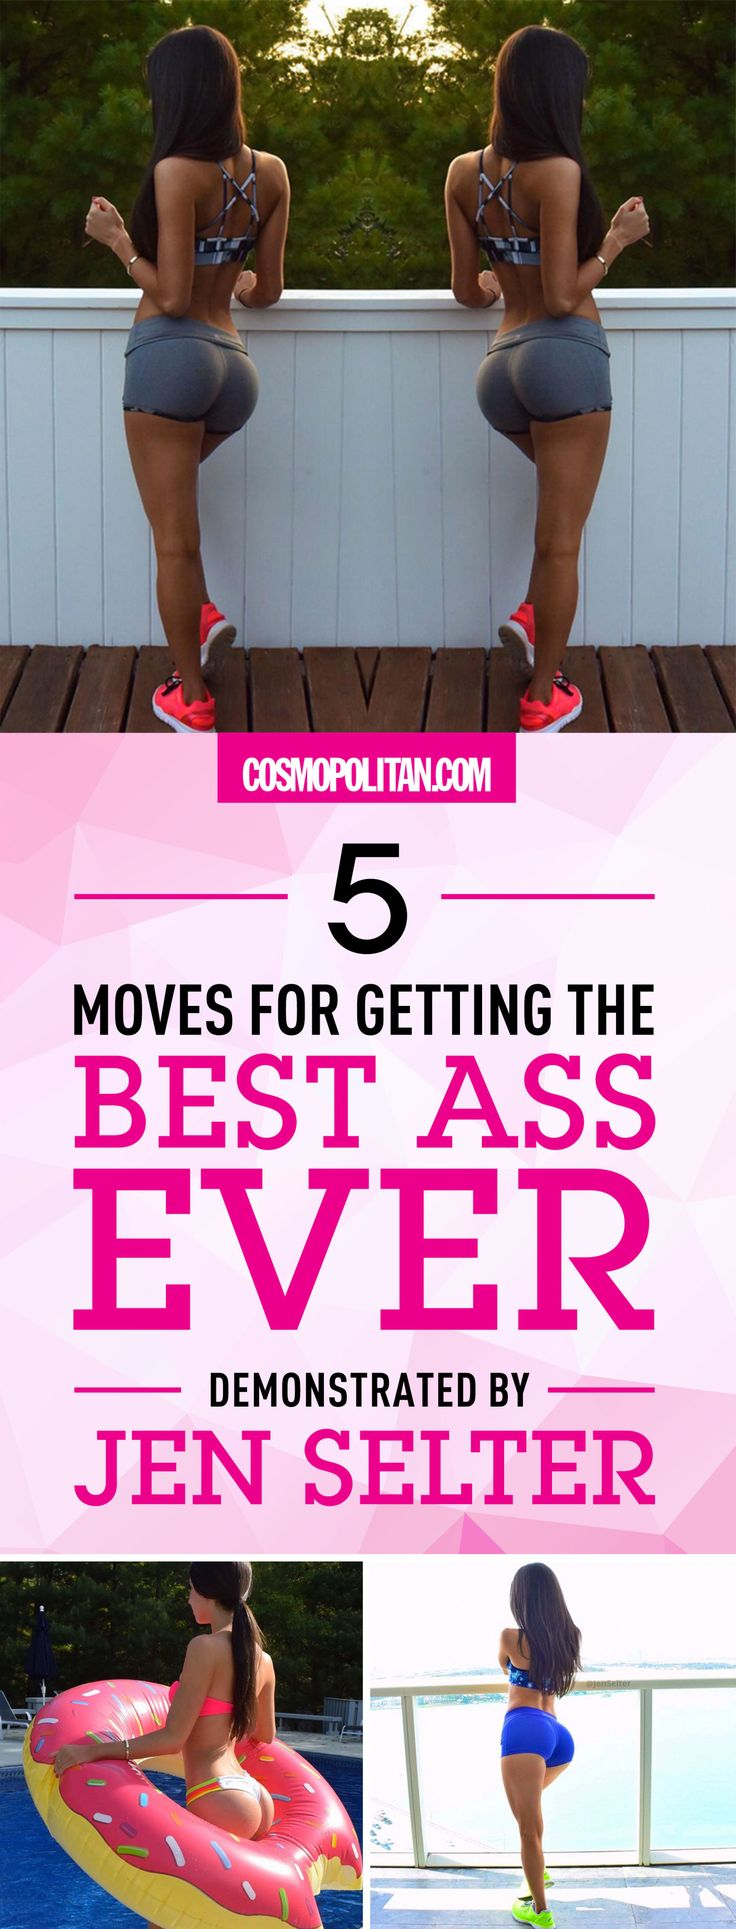 5 Moves for Getting the Best Ass Ever, Demonstrated by Jen Selter  - Cosmopolitan.com